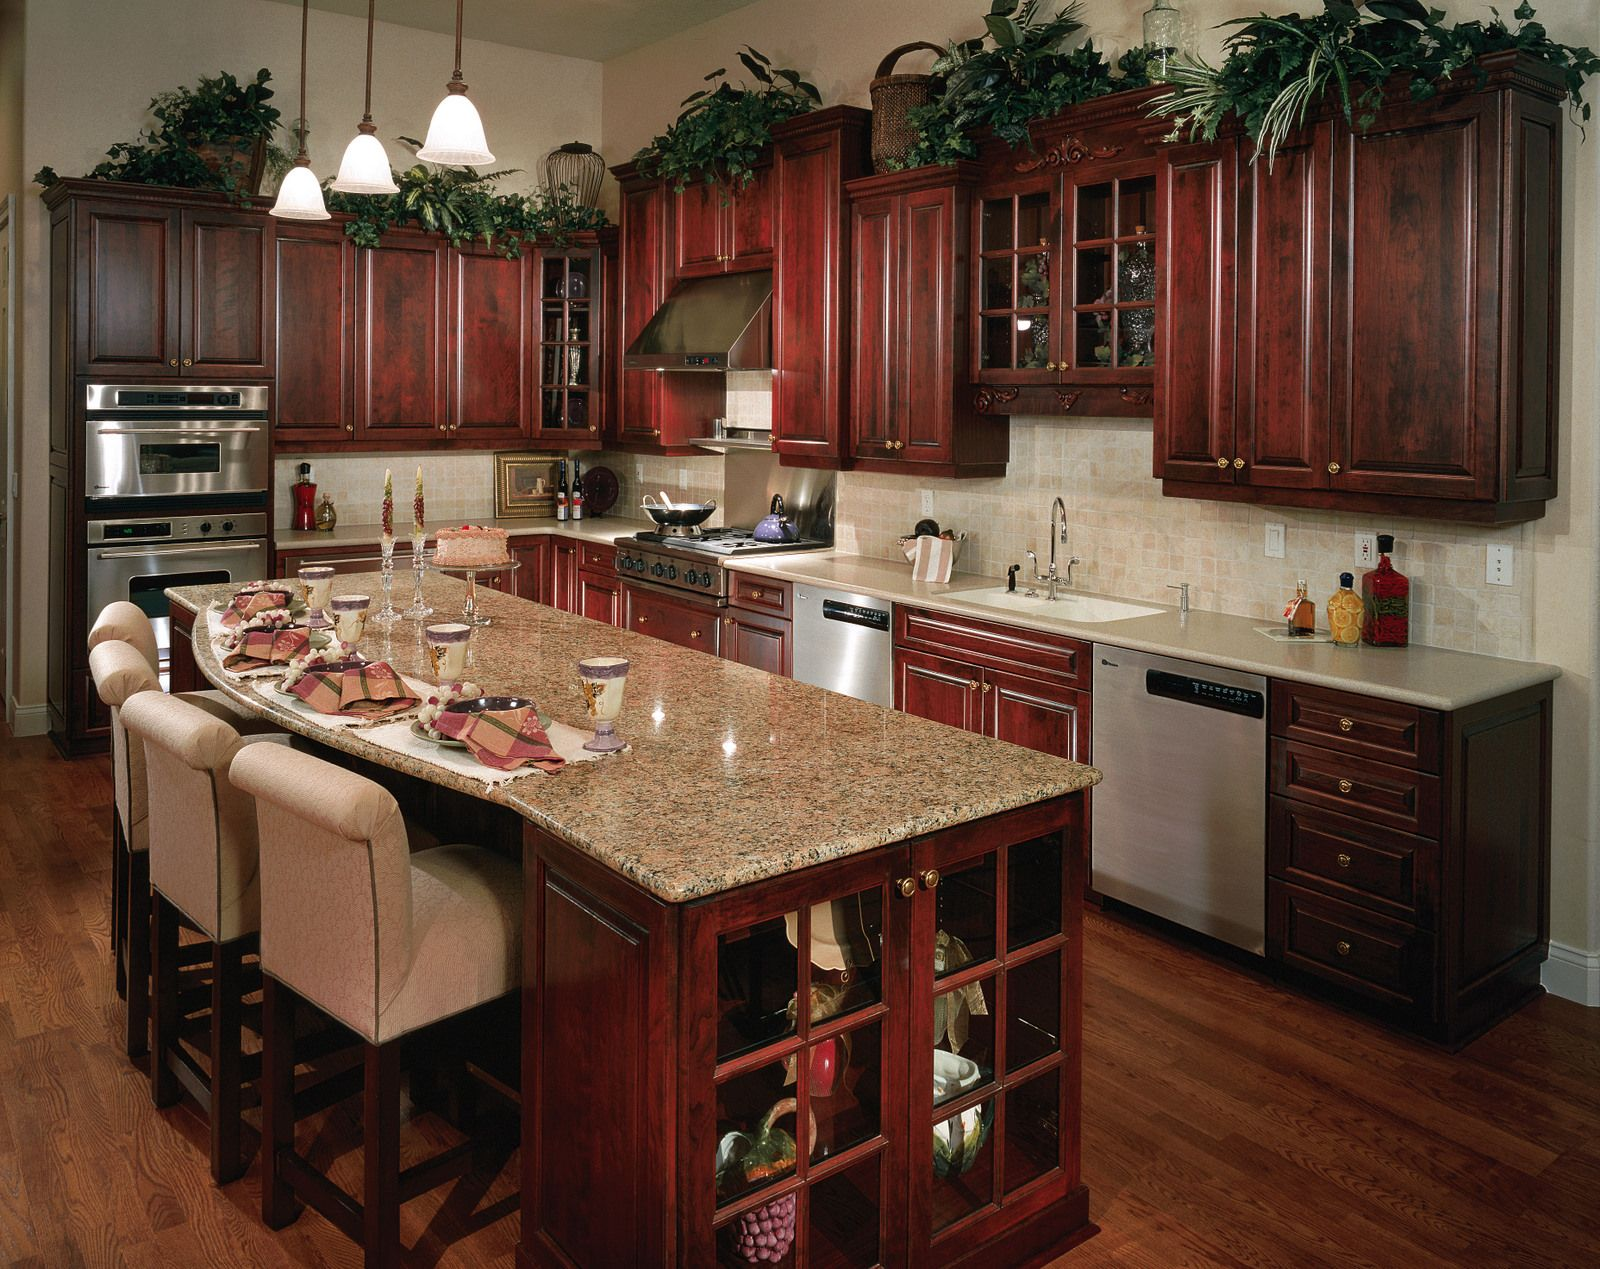 Dark Cabinets And Dark Floors | Oceanside Cabinets, LLC Palm Bay, FL ...